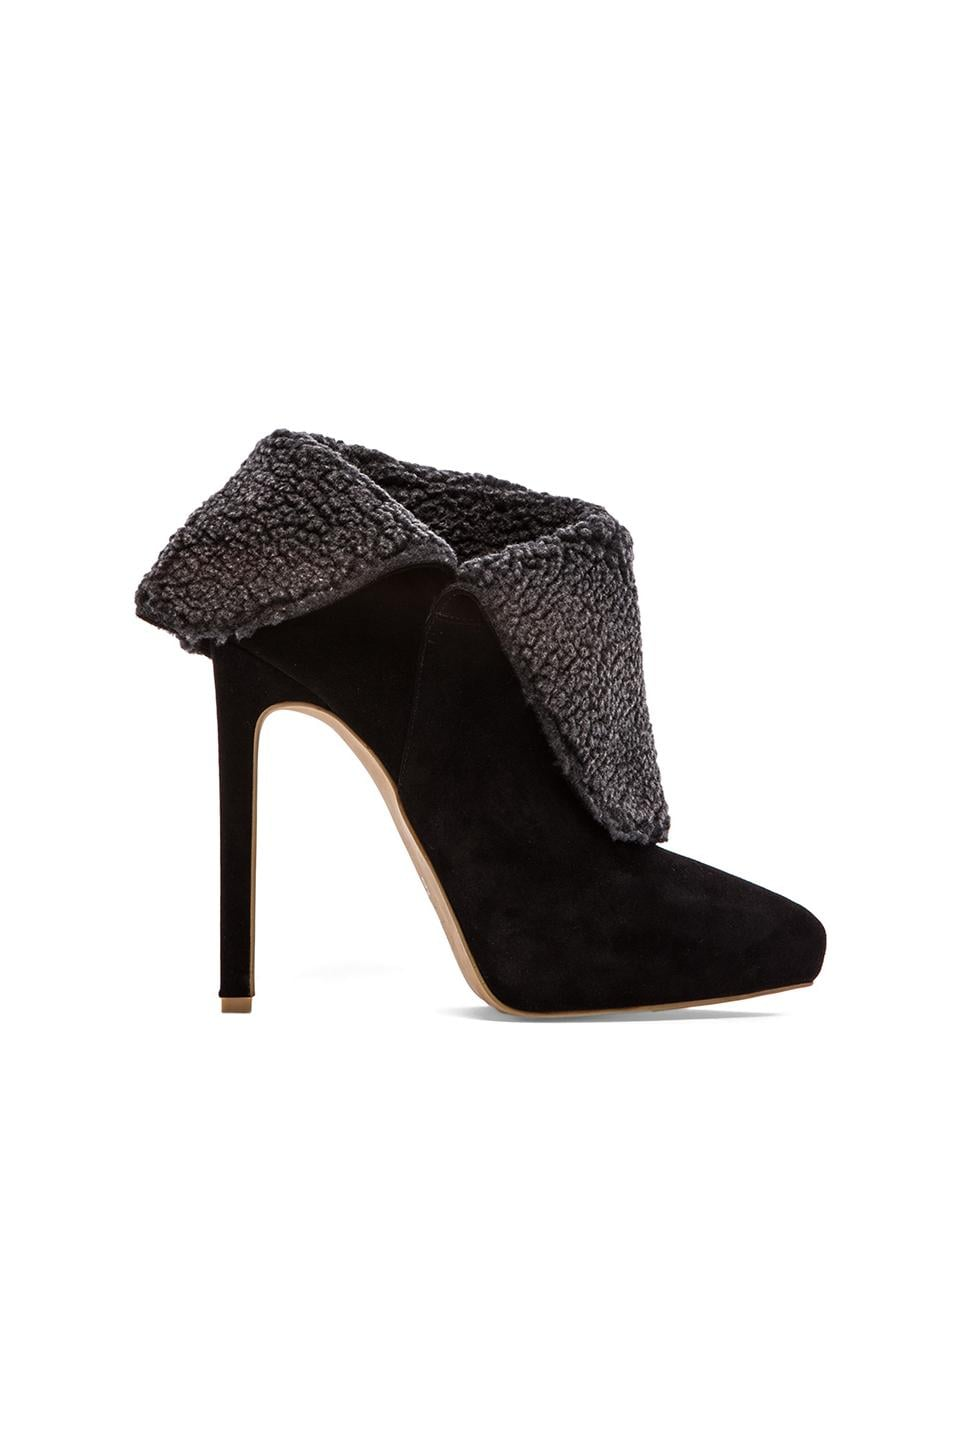 Jeffrey Campbell Zoe Wedge in Taupe Croc